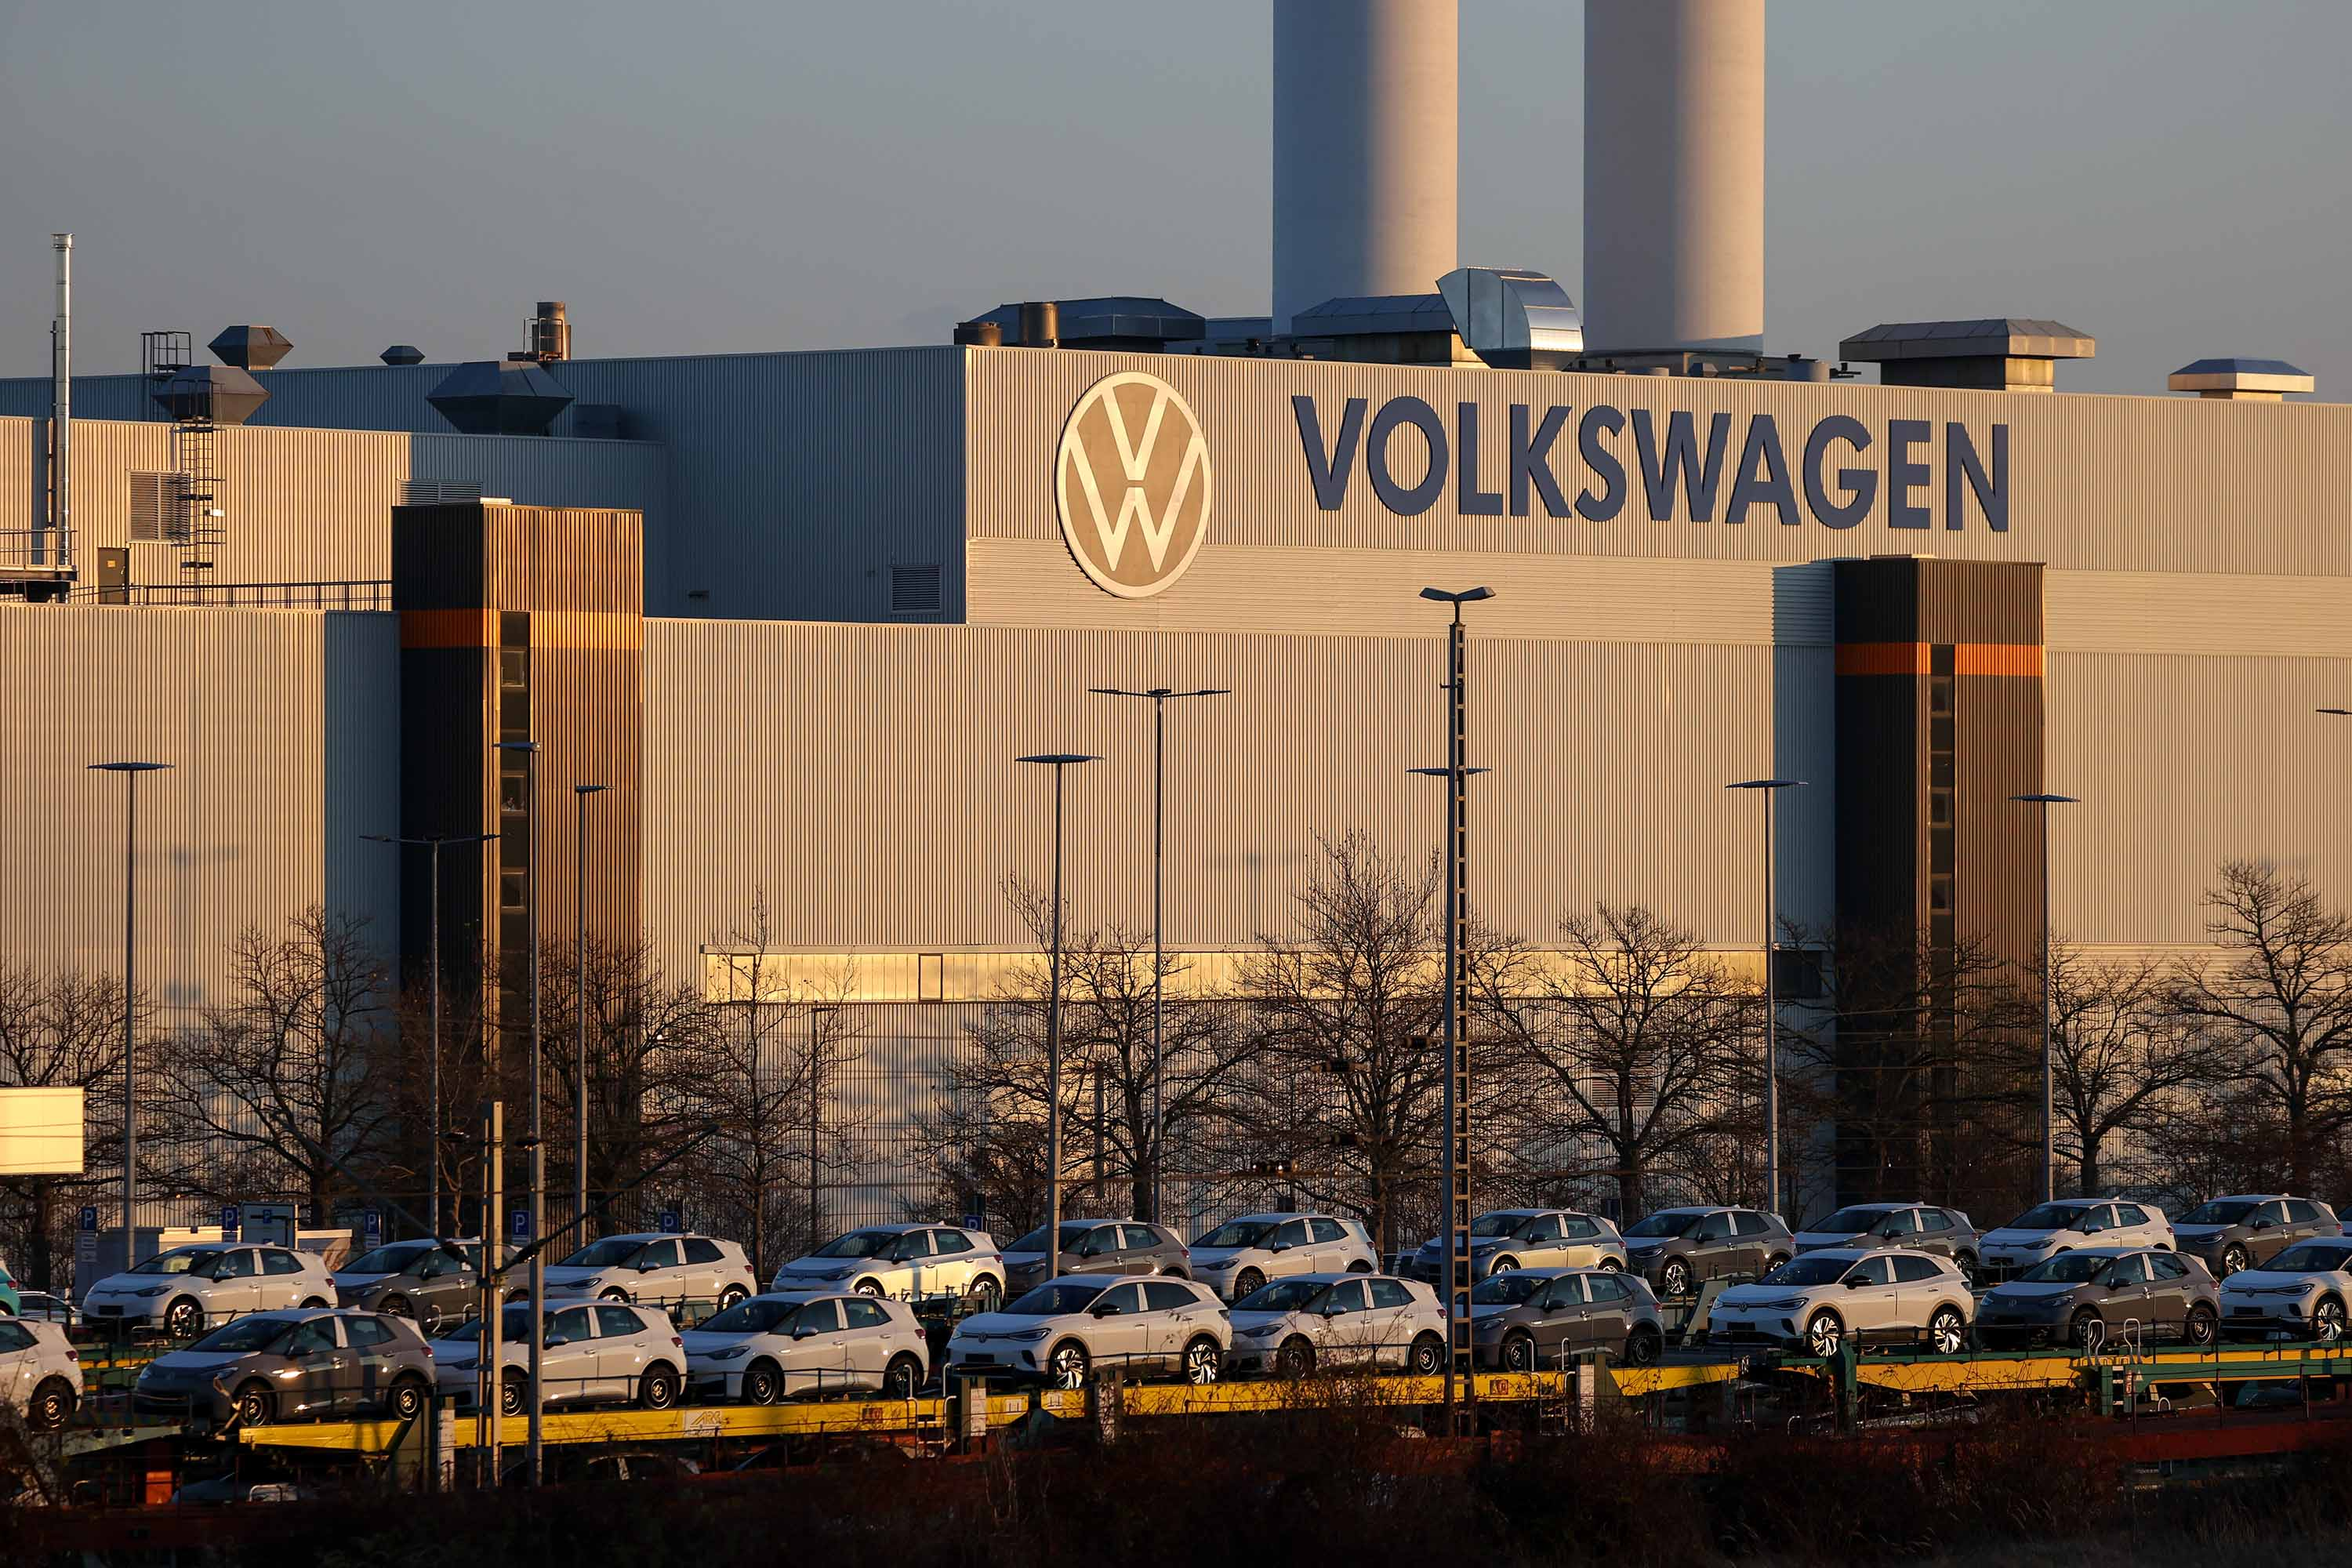 Volkswagen and Audi are starting to challenge Tesla